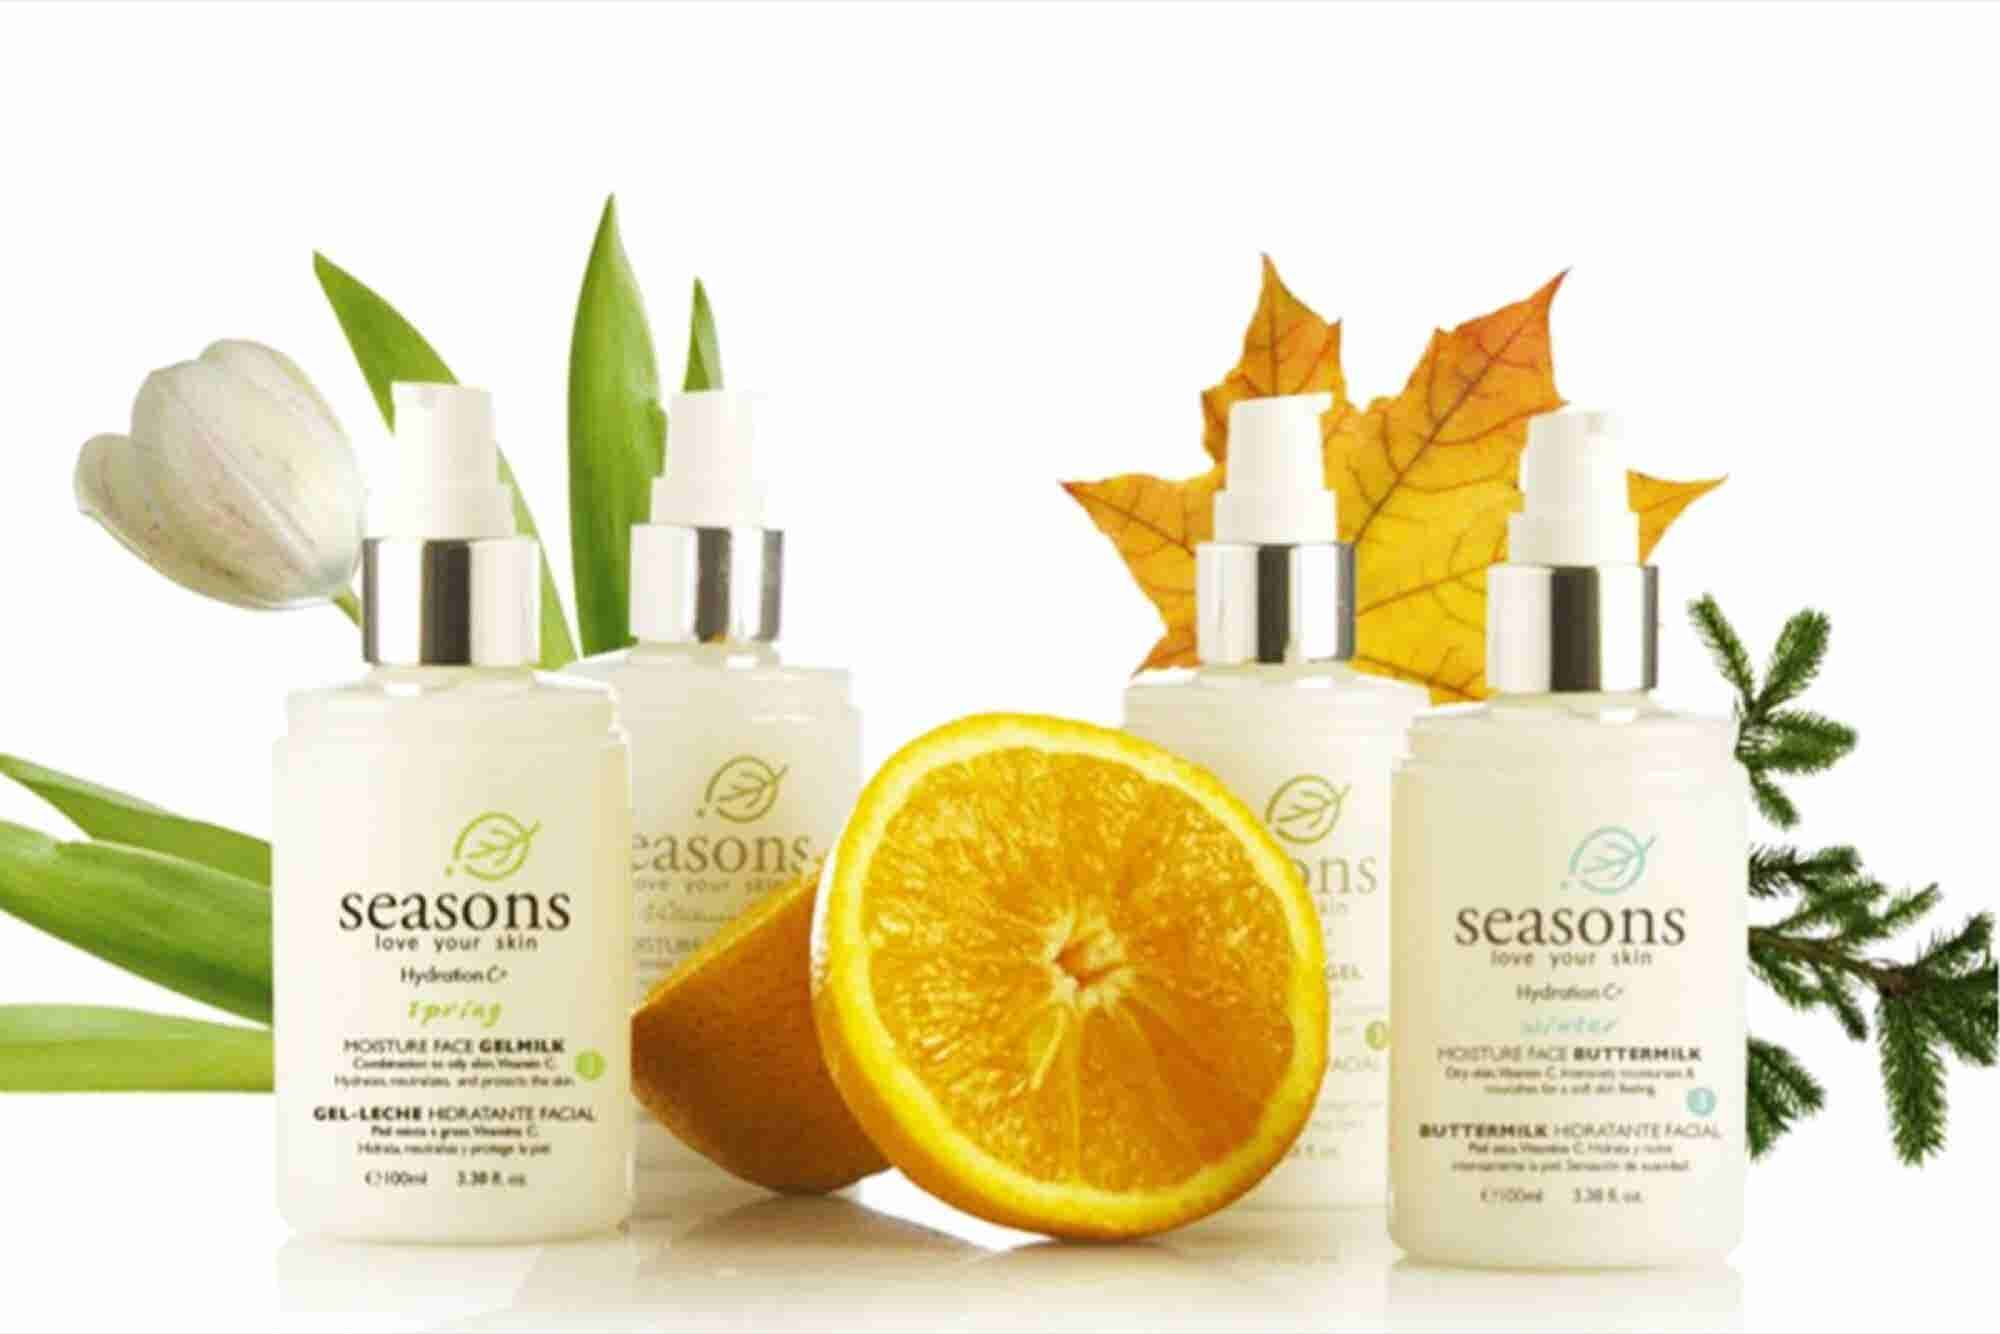 Seasons Love Your Skin, emprendimiento naturalmente ganador